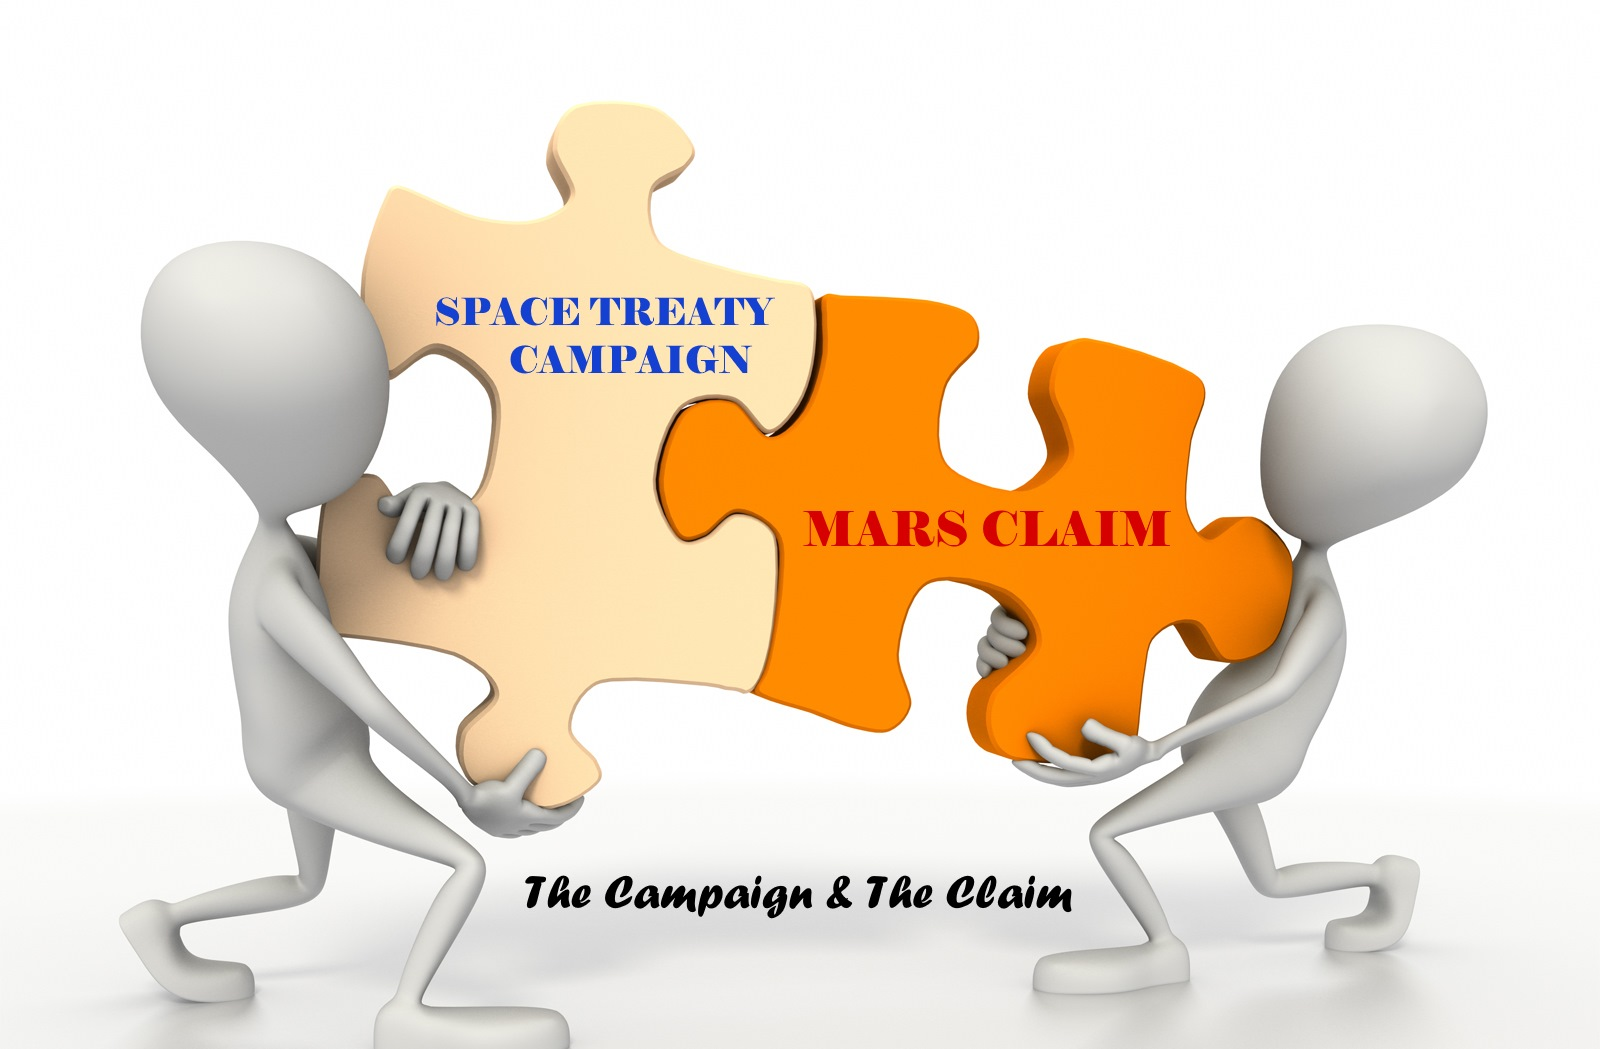 mars-claim-save-the-space-treaty-campaign